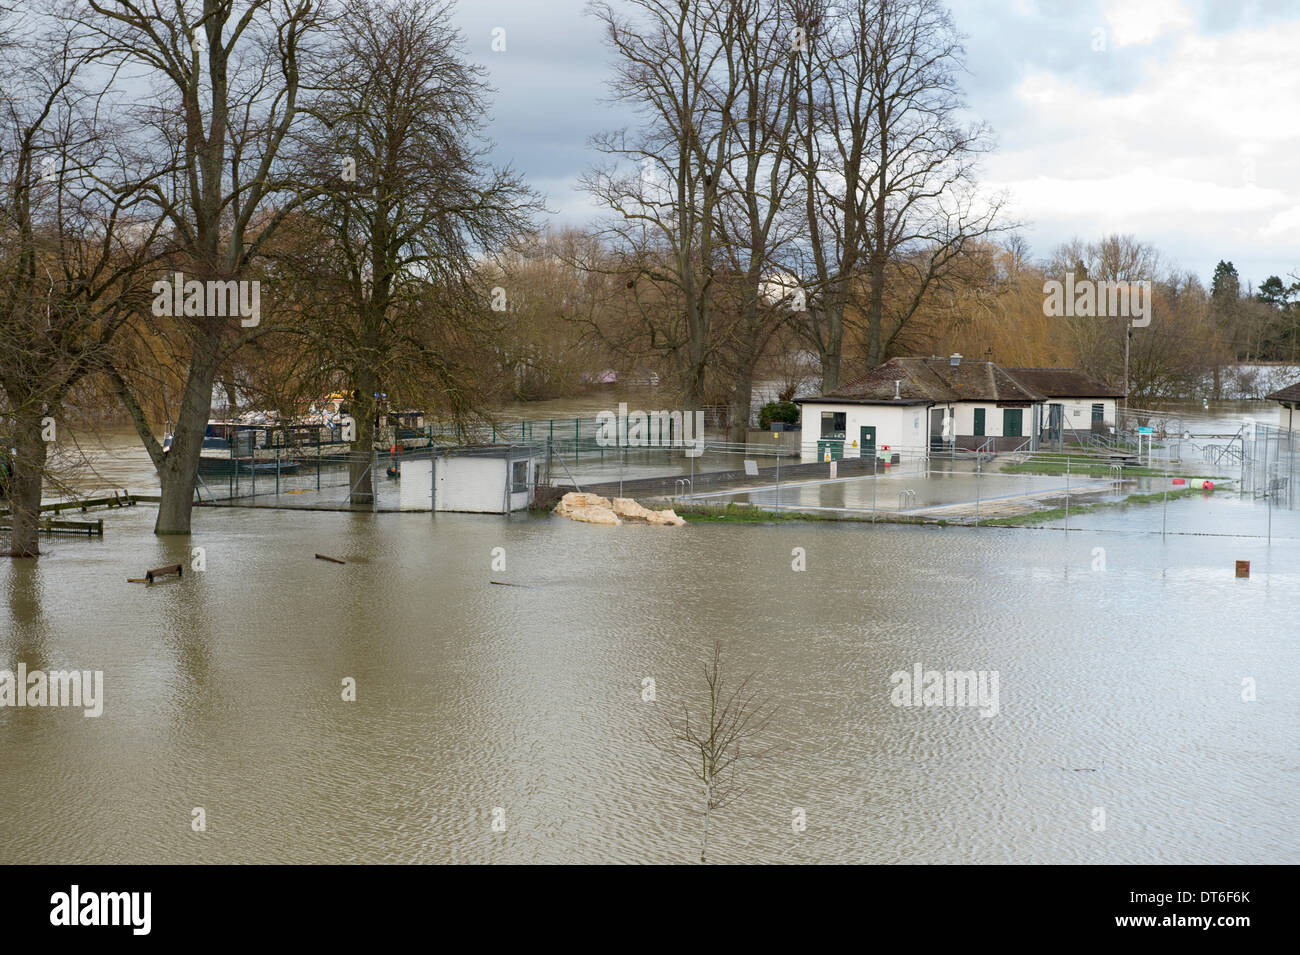 wallingford uk 10th feb 2014 flooded park and recreation